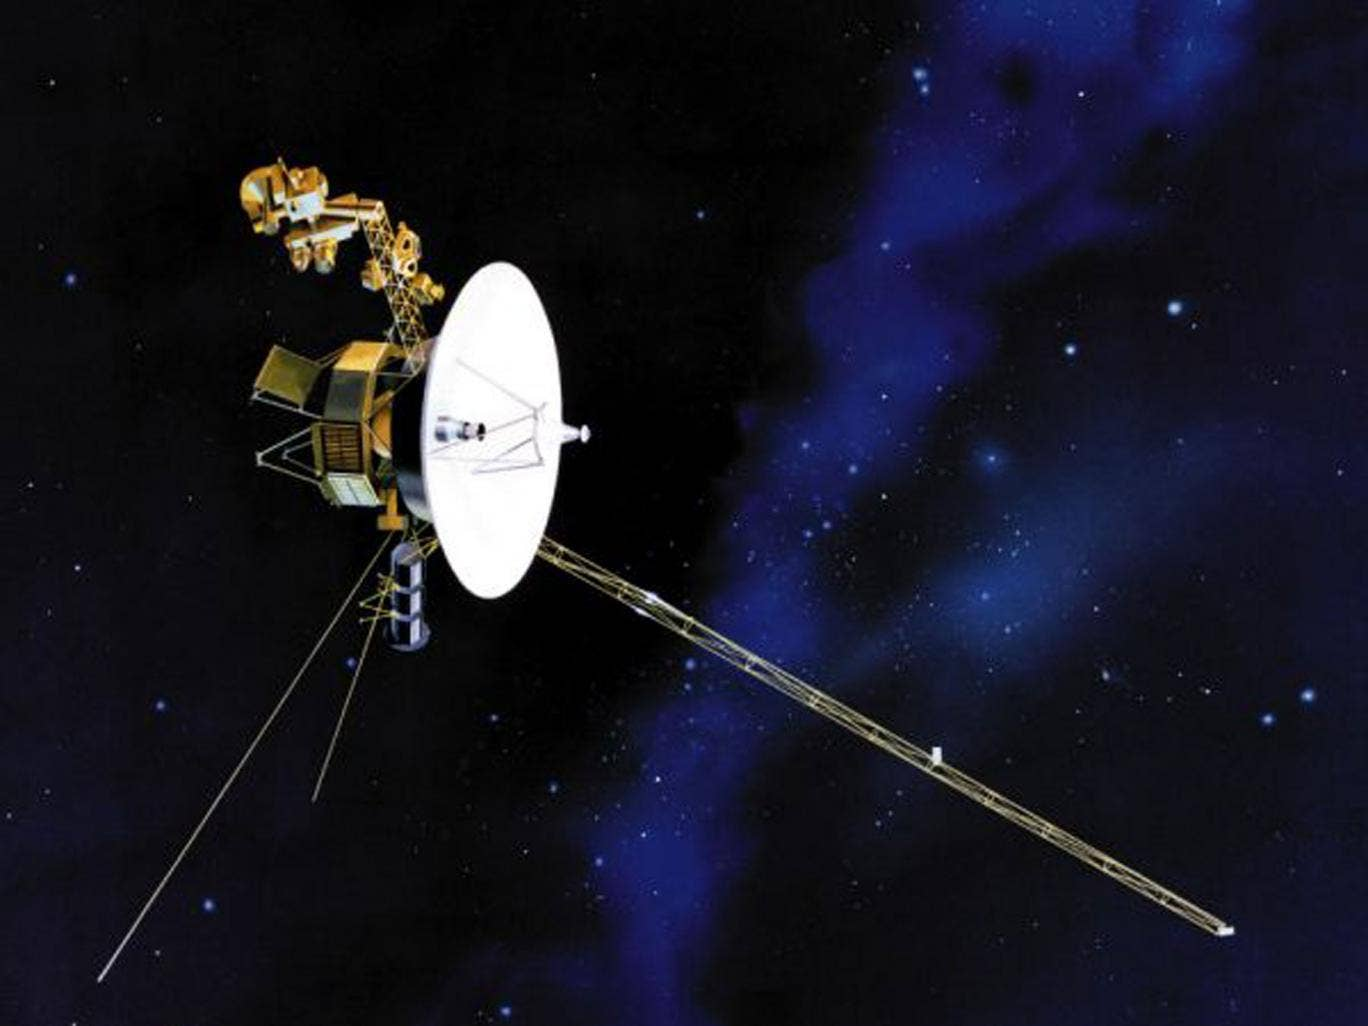 """The paper raises the question of whether alien races could have used the gravity of stars to """"slingshot"""" probes in order to gain speed: a technique humans already use for probes, such as the Voyager."""